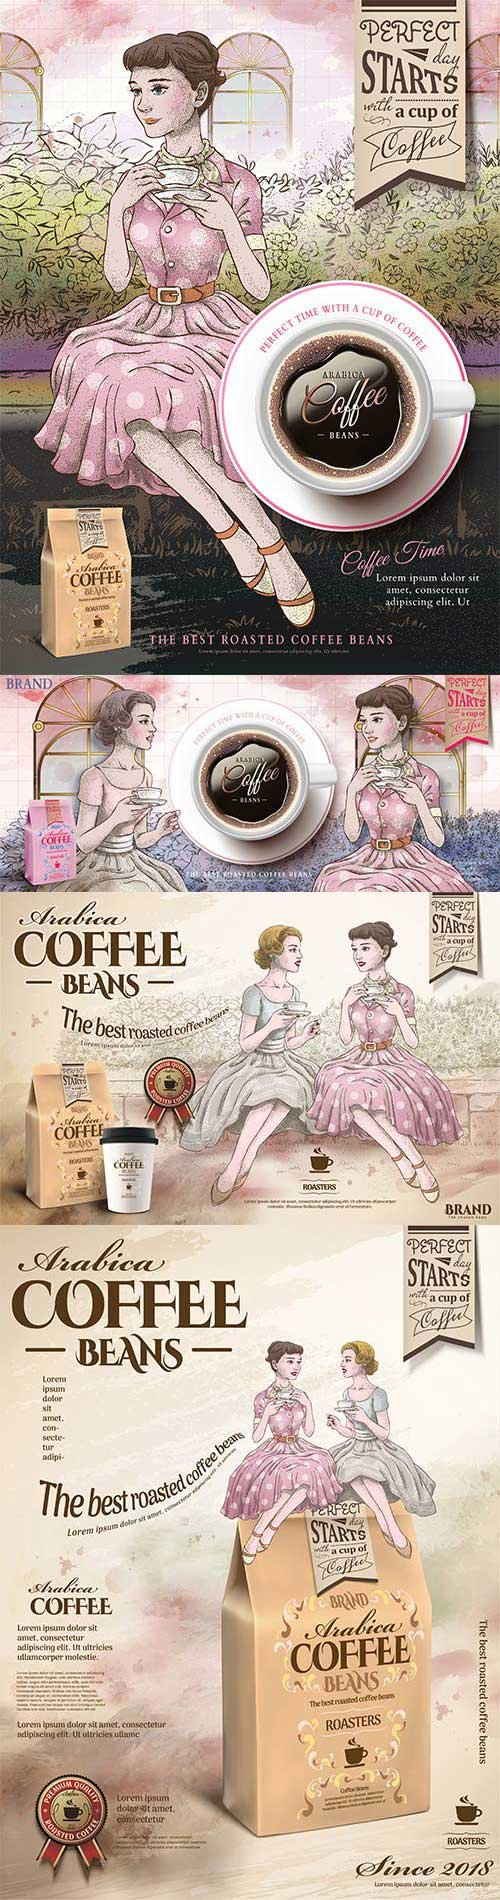 Retro coffee beans ads in 3d vector illustration